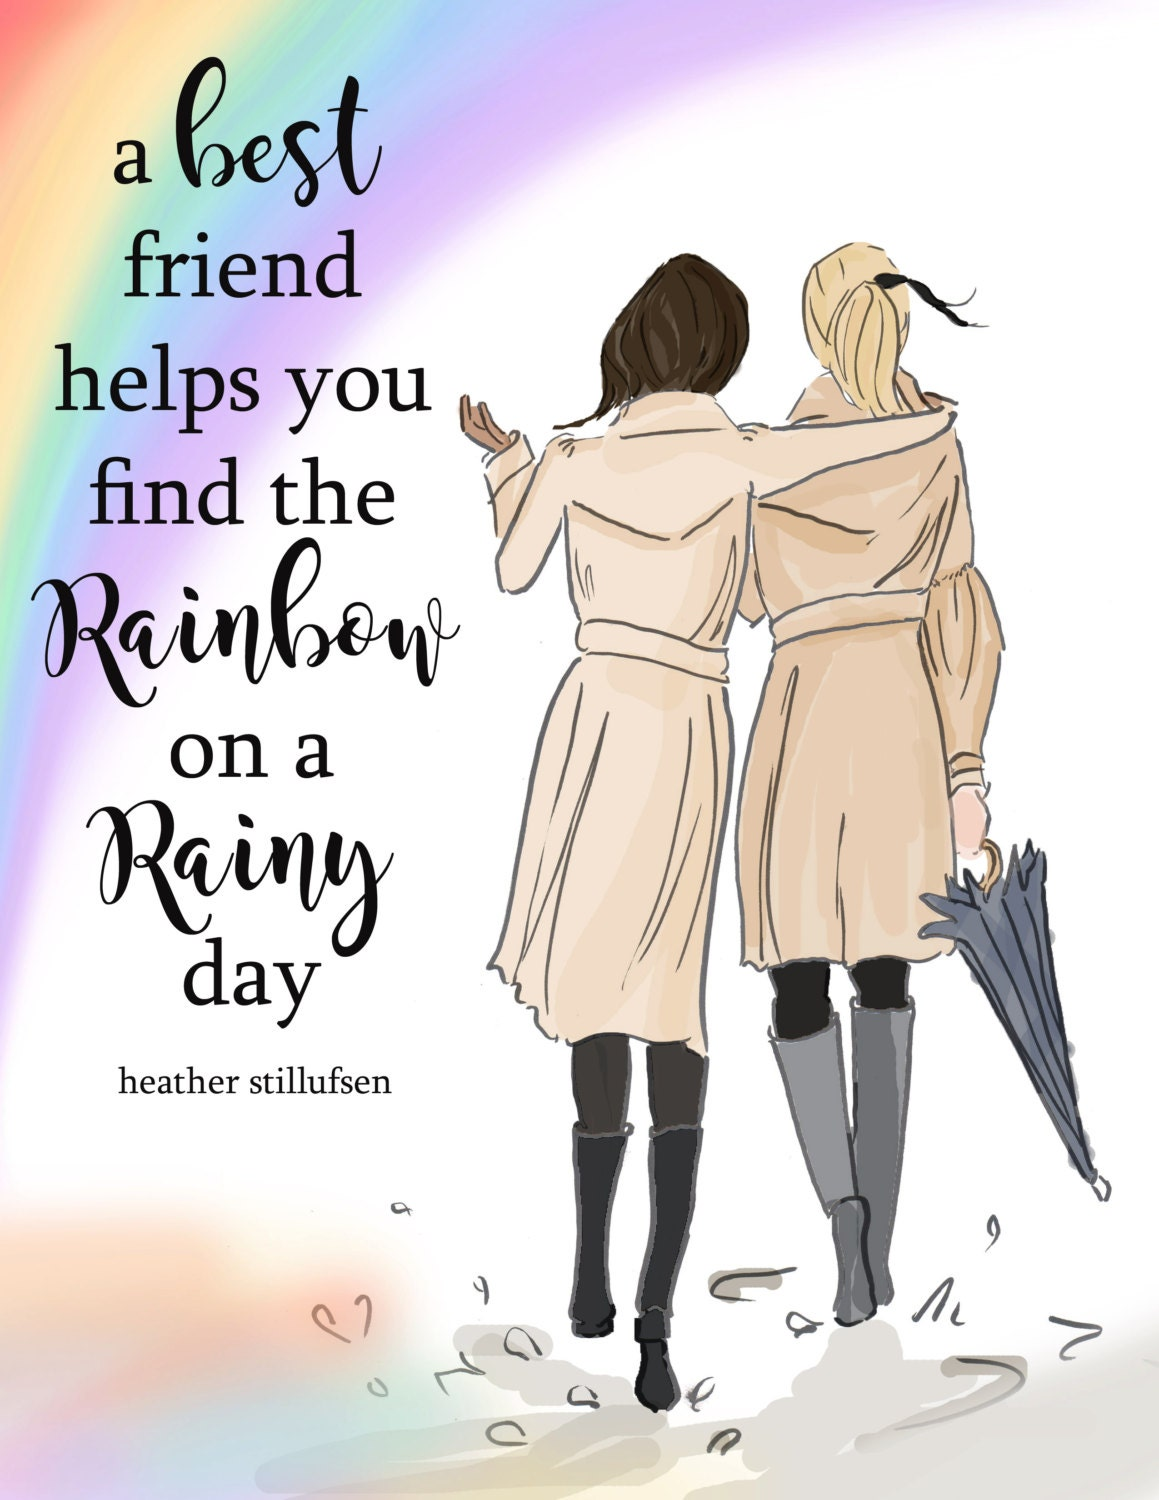 Best Friends For Frosting: Cards For Best Friends Best Friend Quotes. Cards For